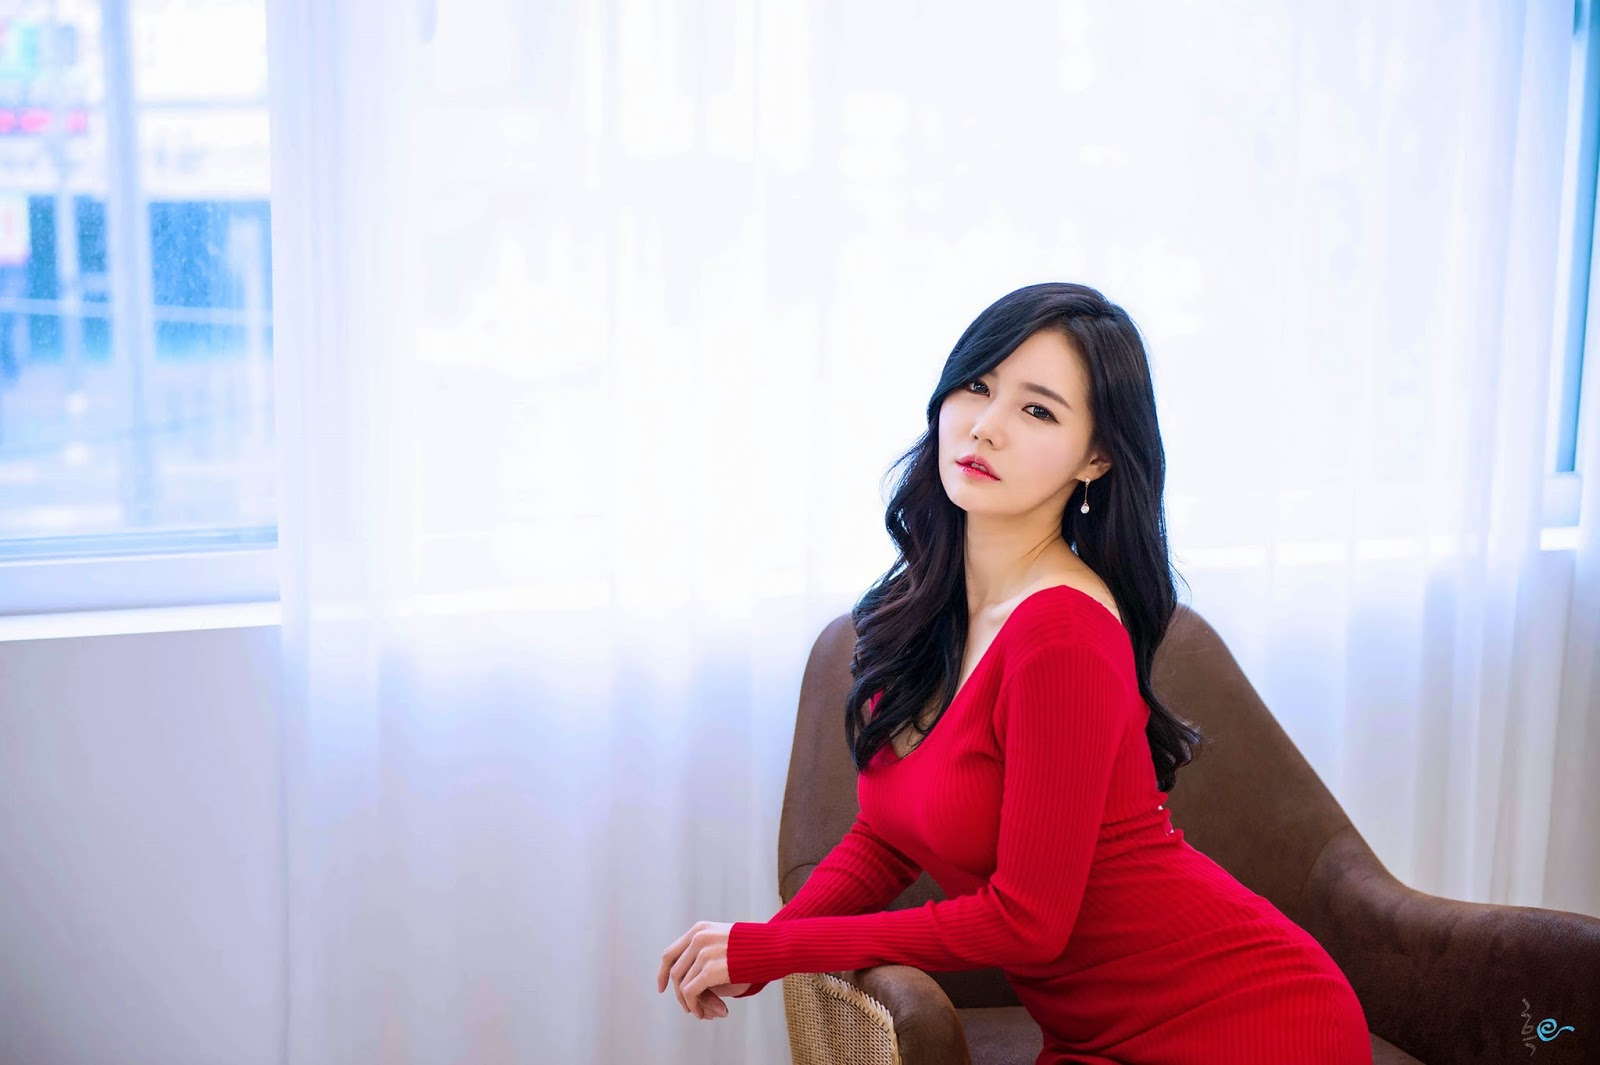 01 Gorgeous Han Ga Eun In Tight Red Dress - very cute asian girl-girlcute4u.blogspot.com